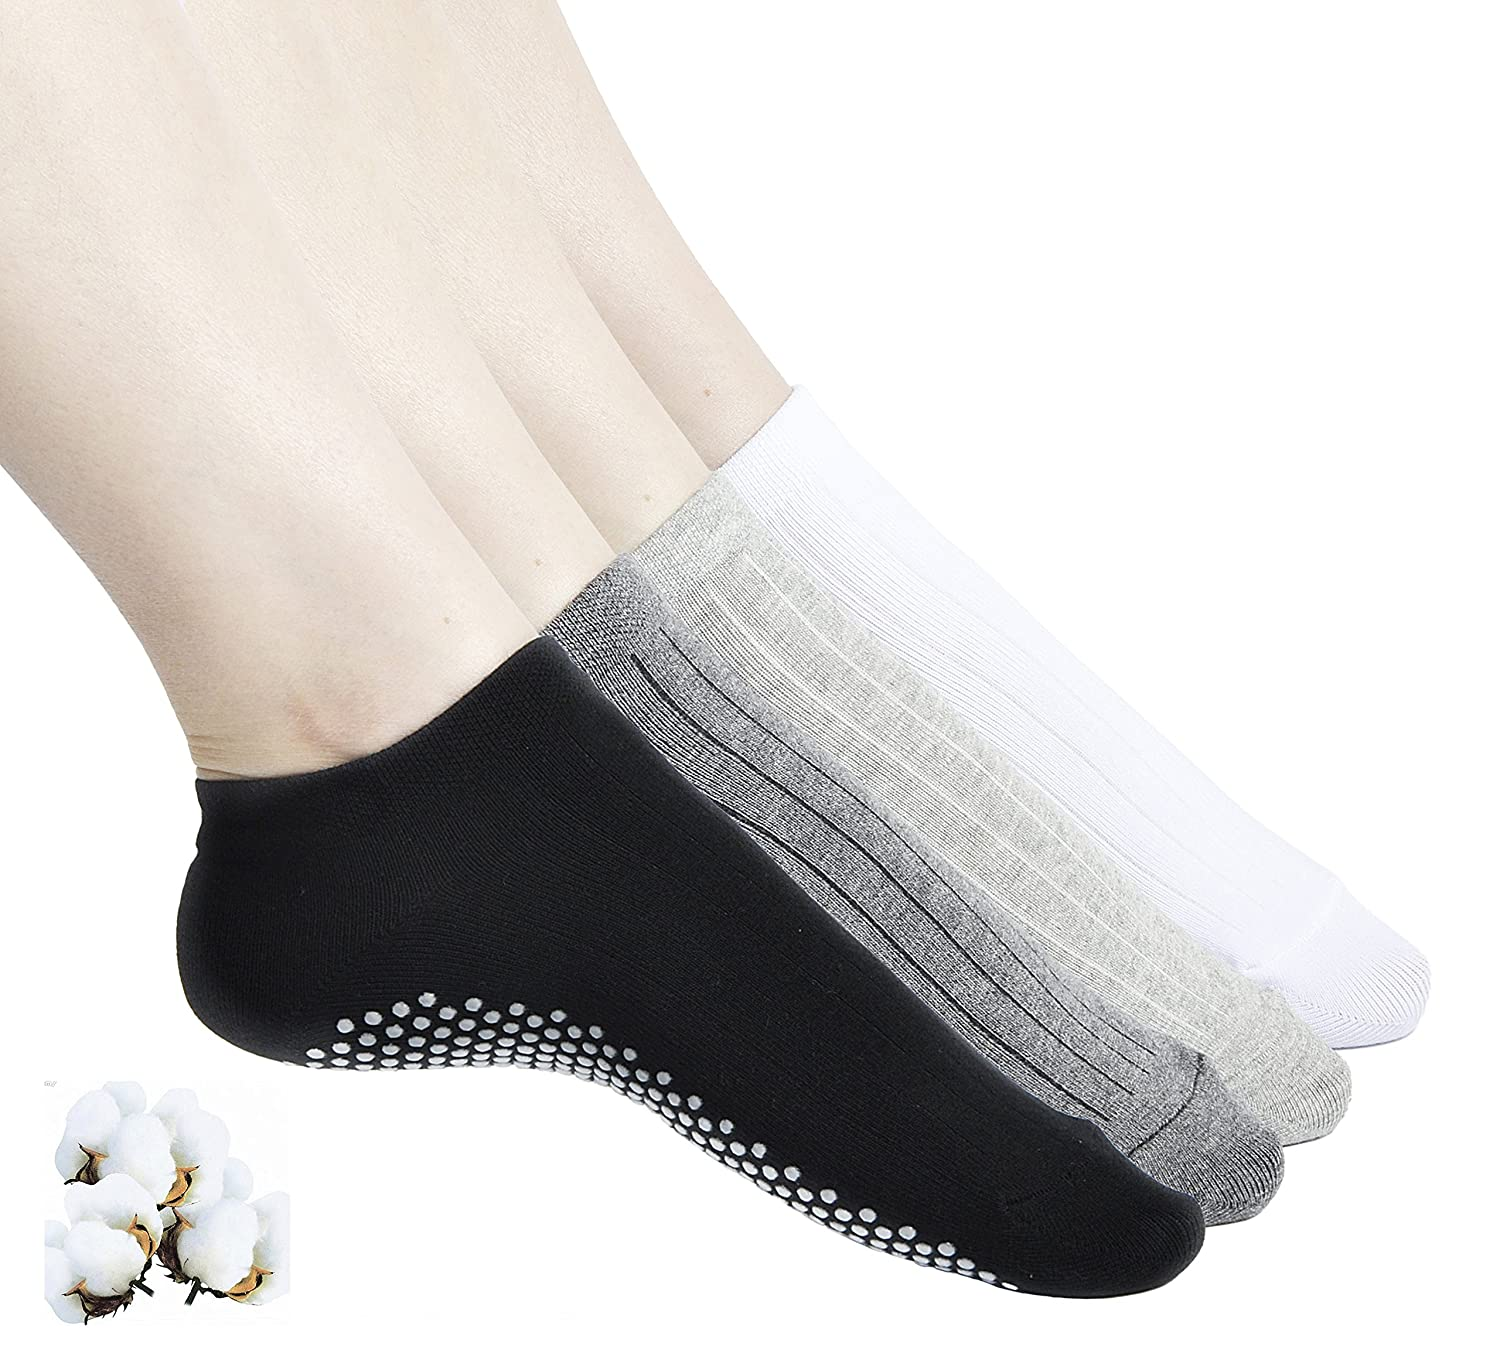 666e415cd1 ... 4.8% Spandex 02 black+white+grey+darkgrey and 03 black are made of 71.5  Cotton, 24.7% Nylon, 3.8% Spandex 2.SUITABLE SIZE :The yoga socks are about  22 ...